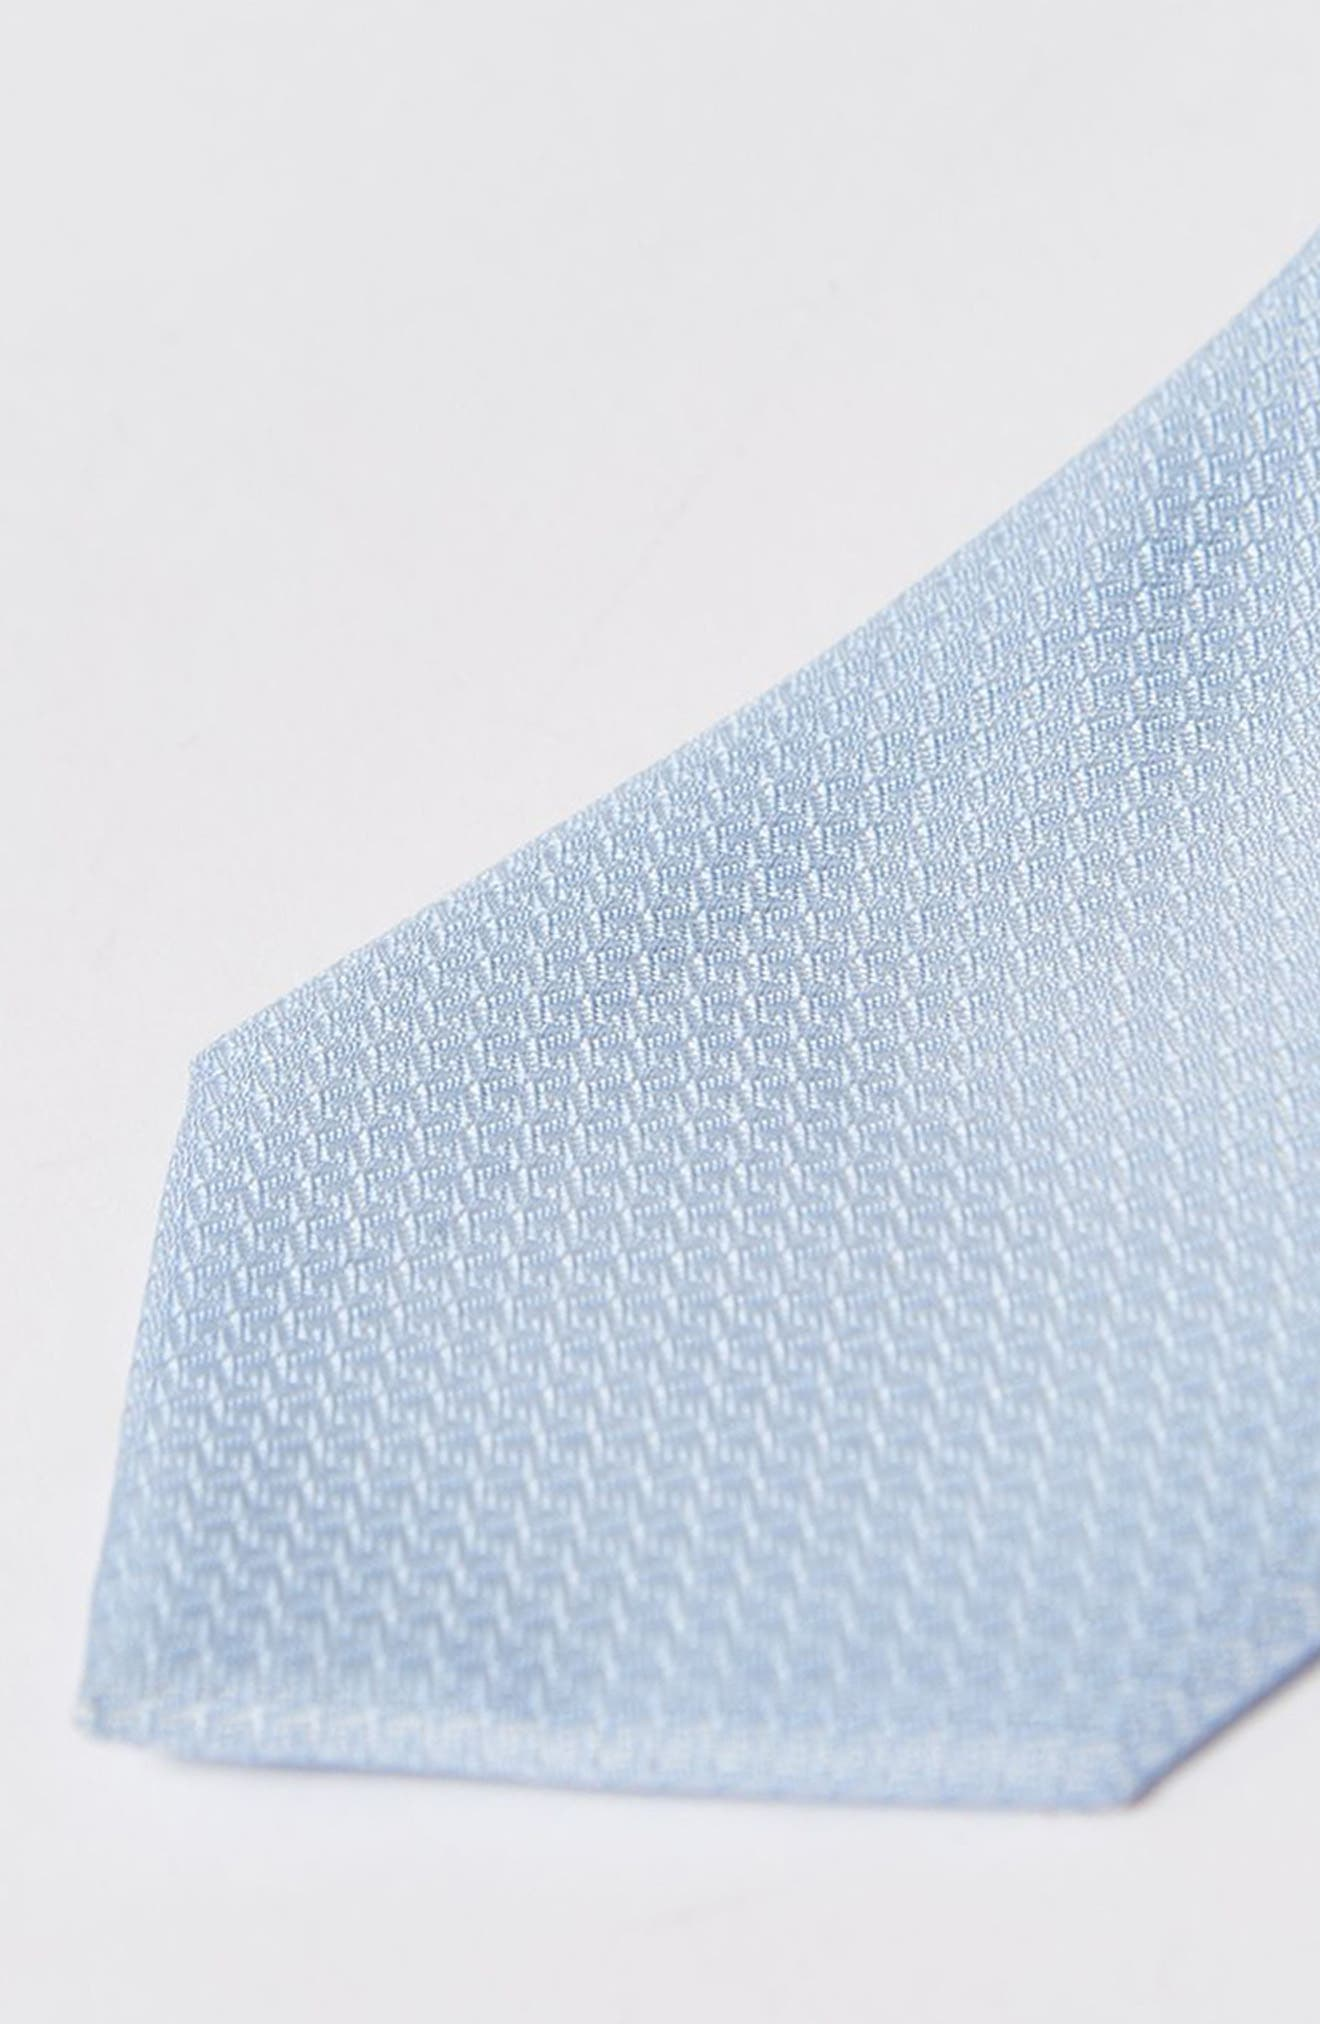 Textured Woven Tie,                             Alternate thumbnail 2, color,                             Light Blue